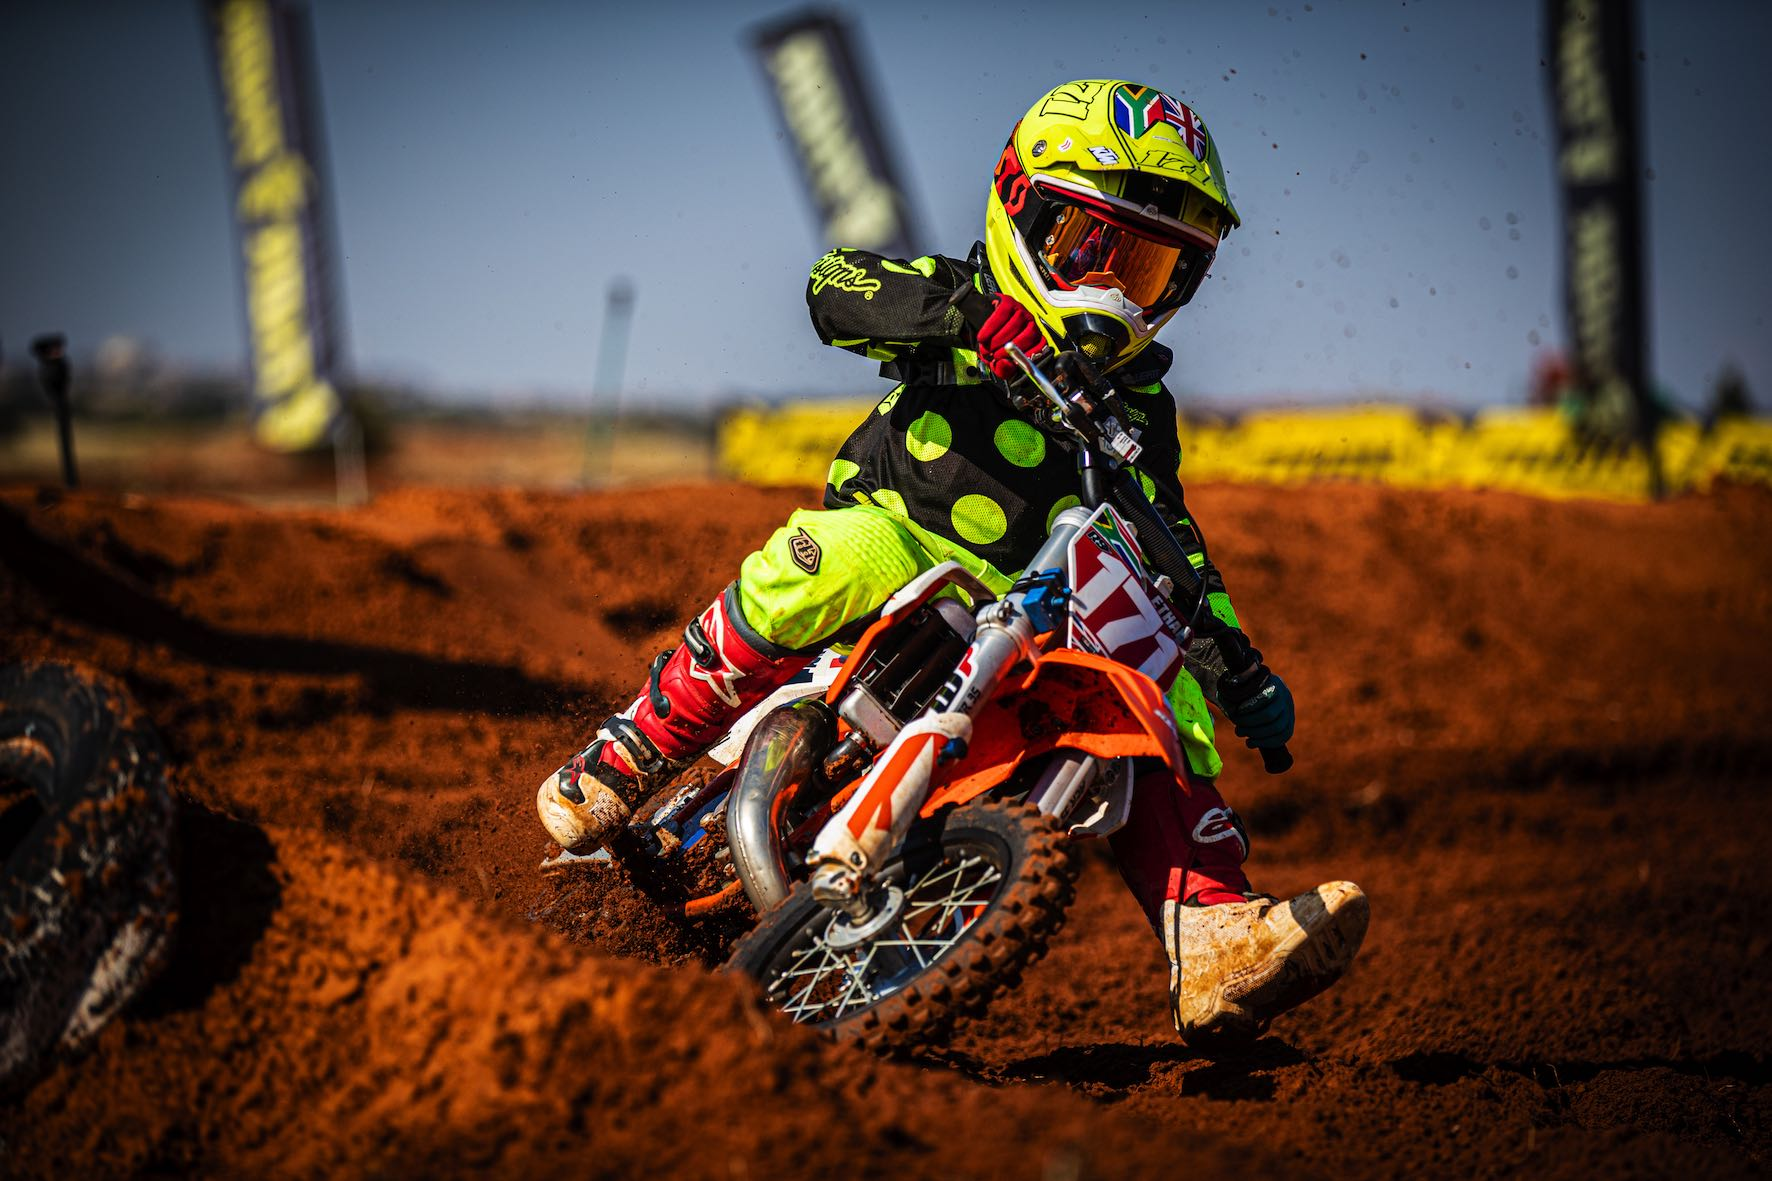 Ethan Williamson racing his way to victory at Round 3 of the SA Motocross Nationals